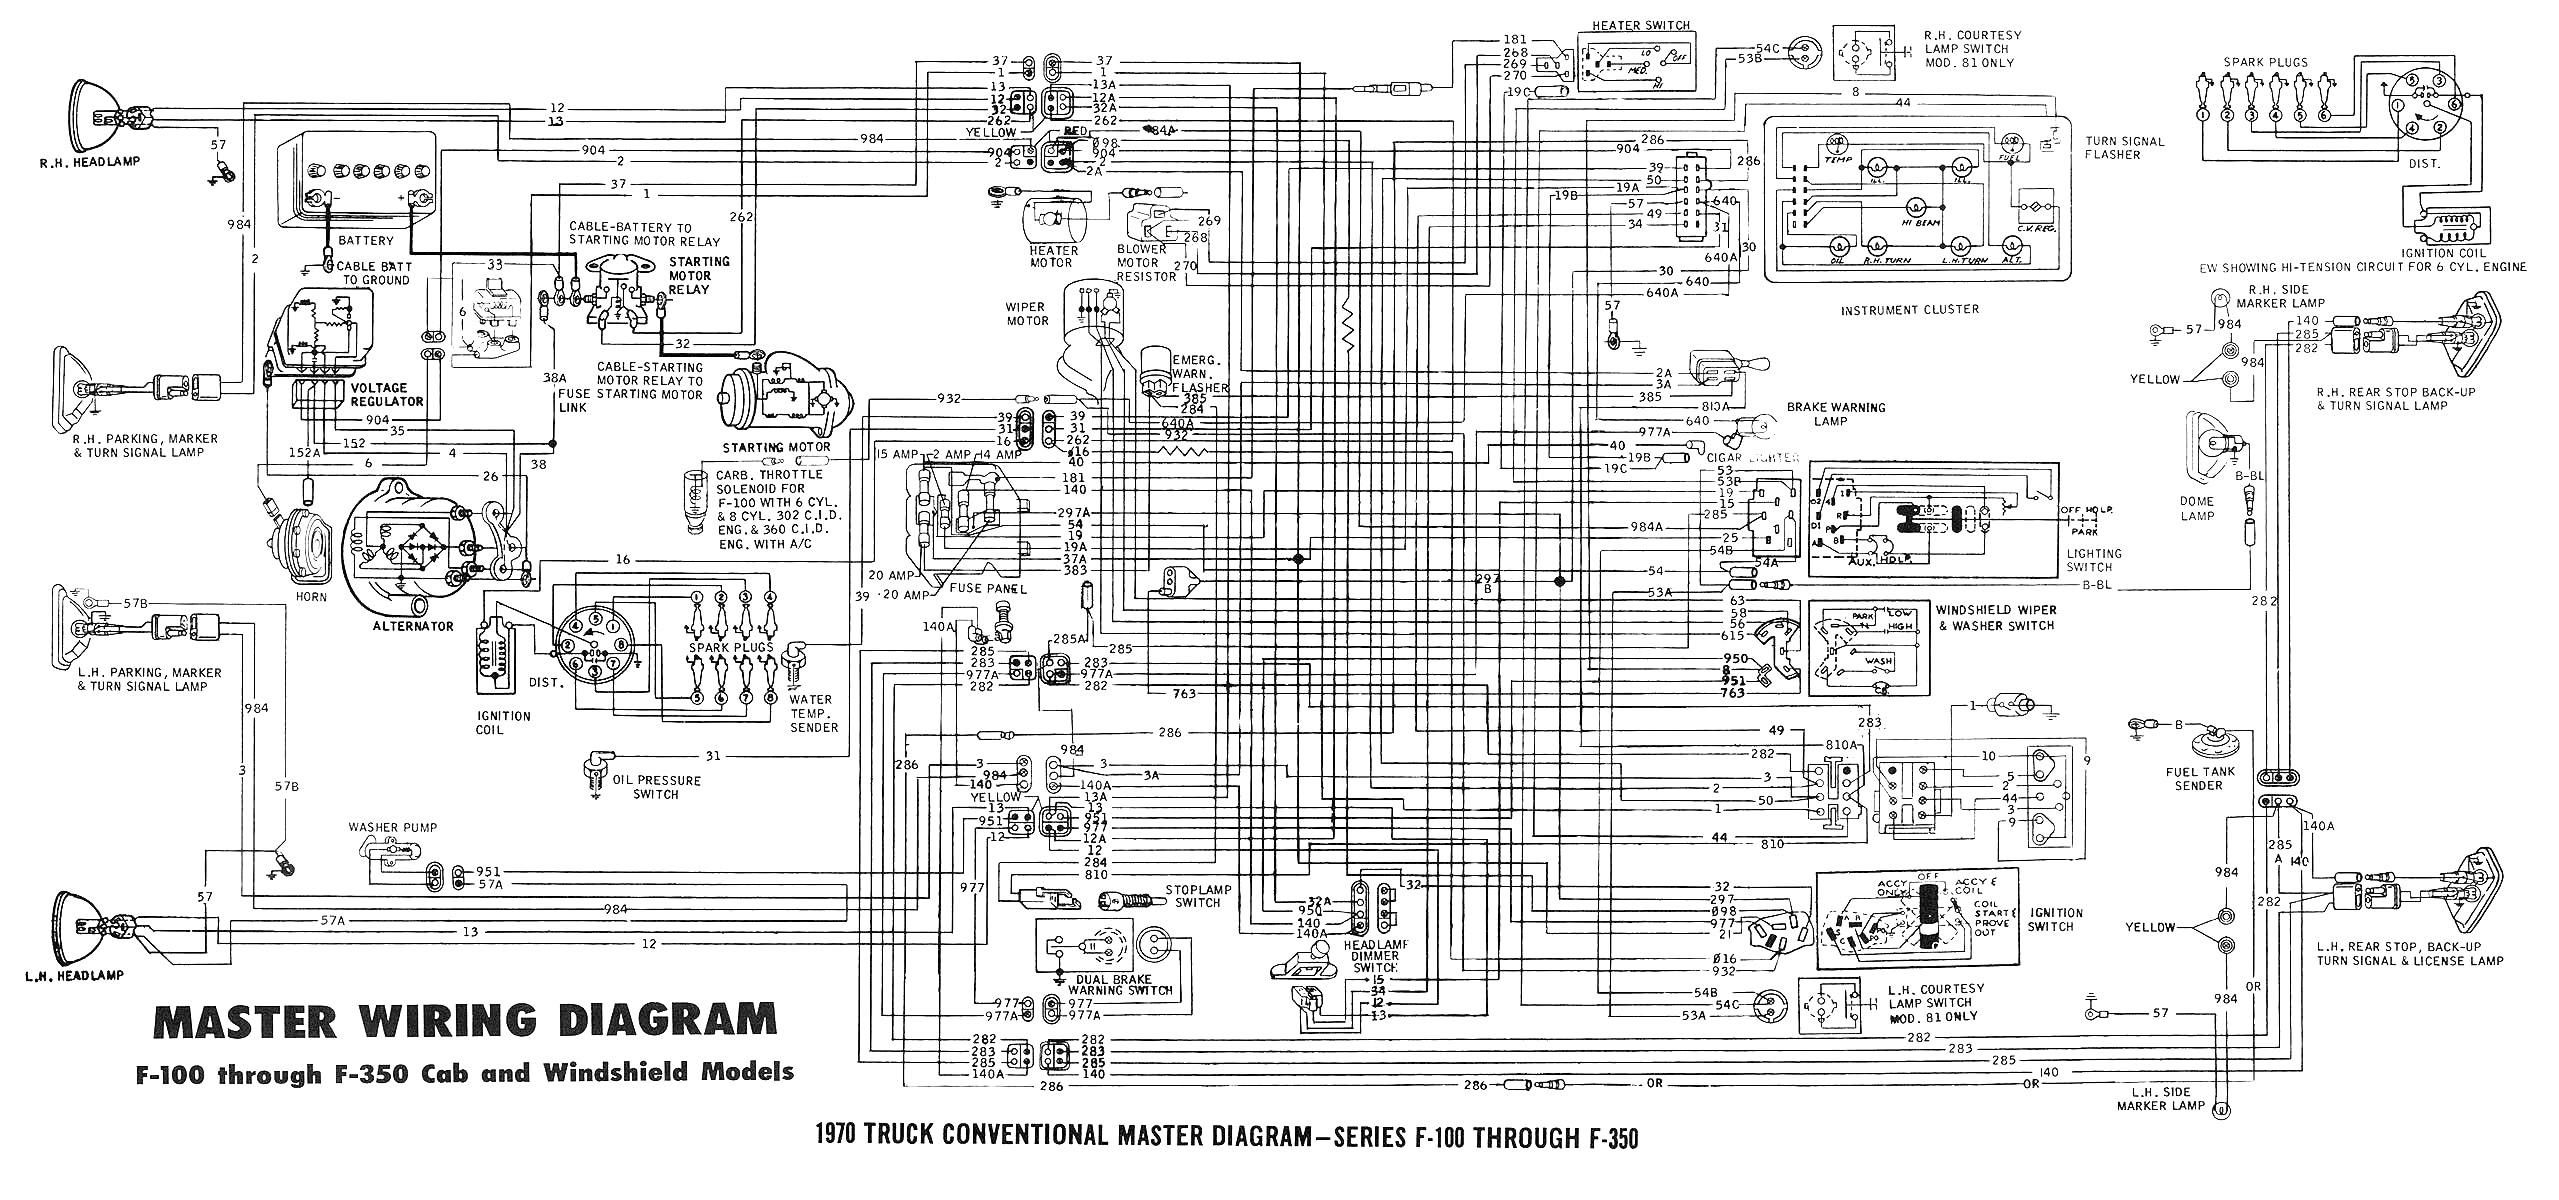 Ae111 Wiring Diagram Roc Grp Org Best Of